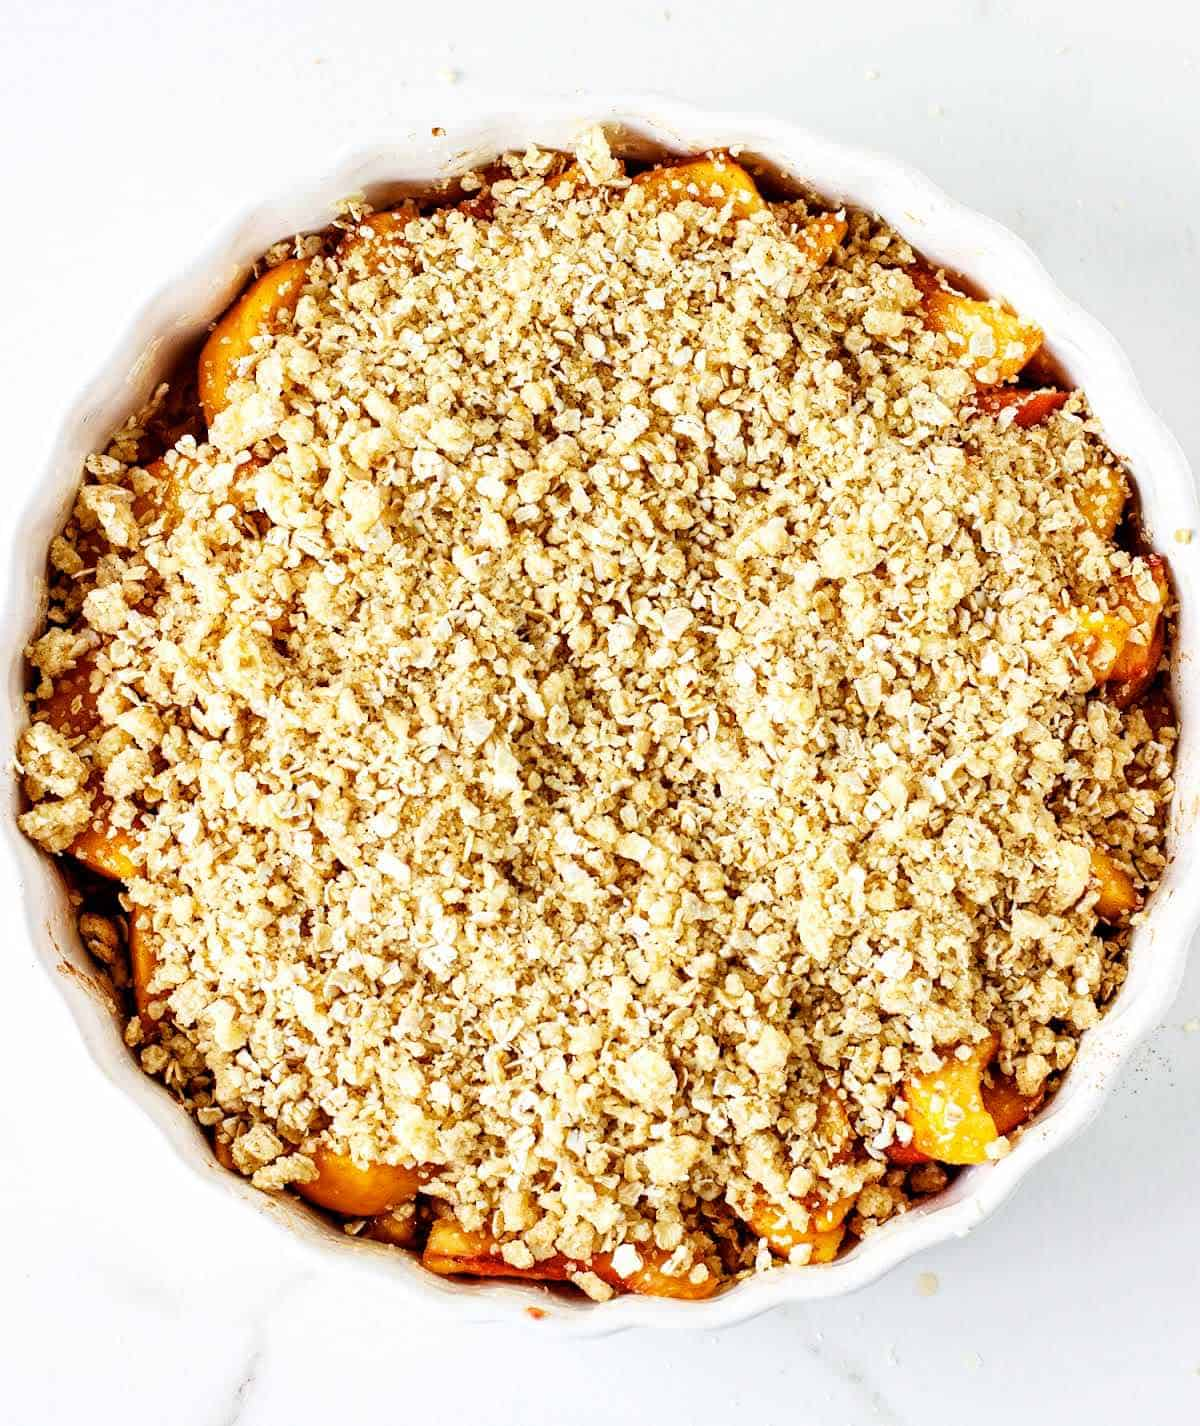 Round dish with unbaked peach crisp on white surface